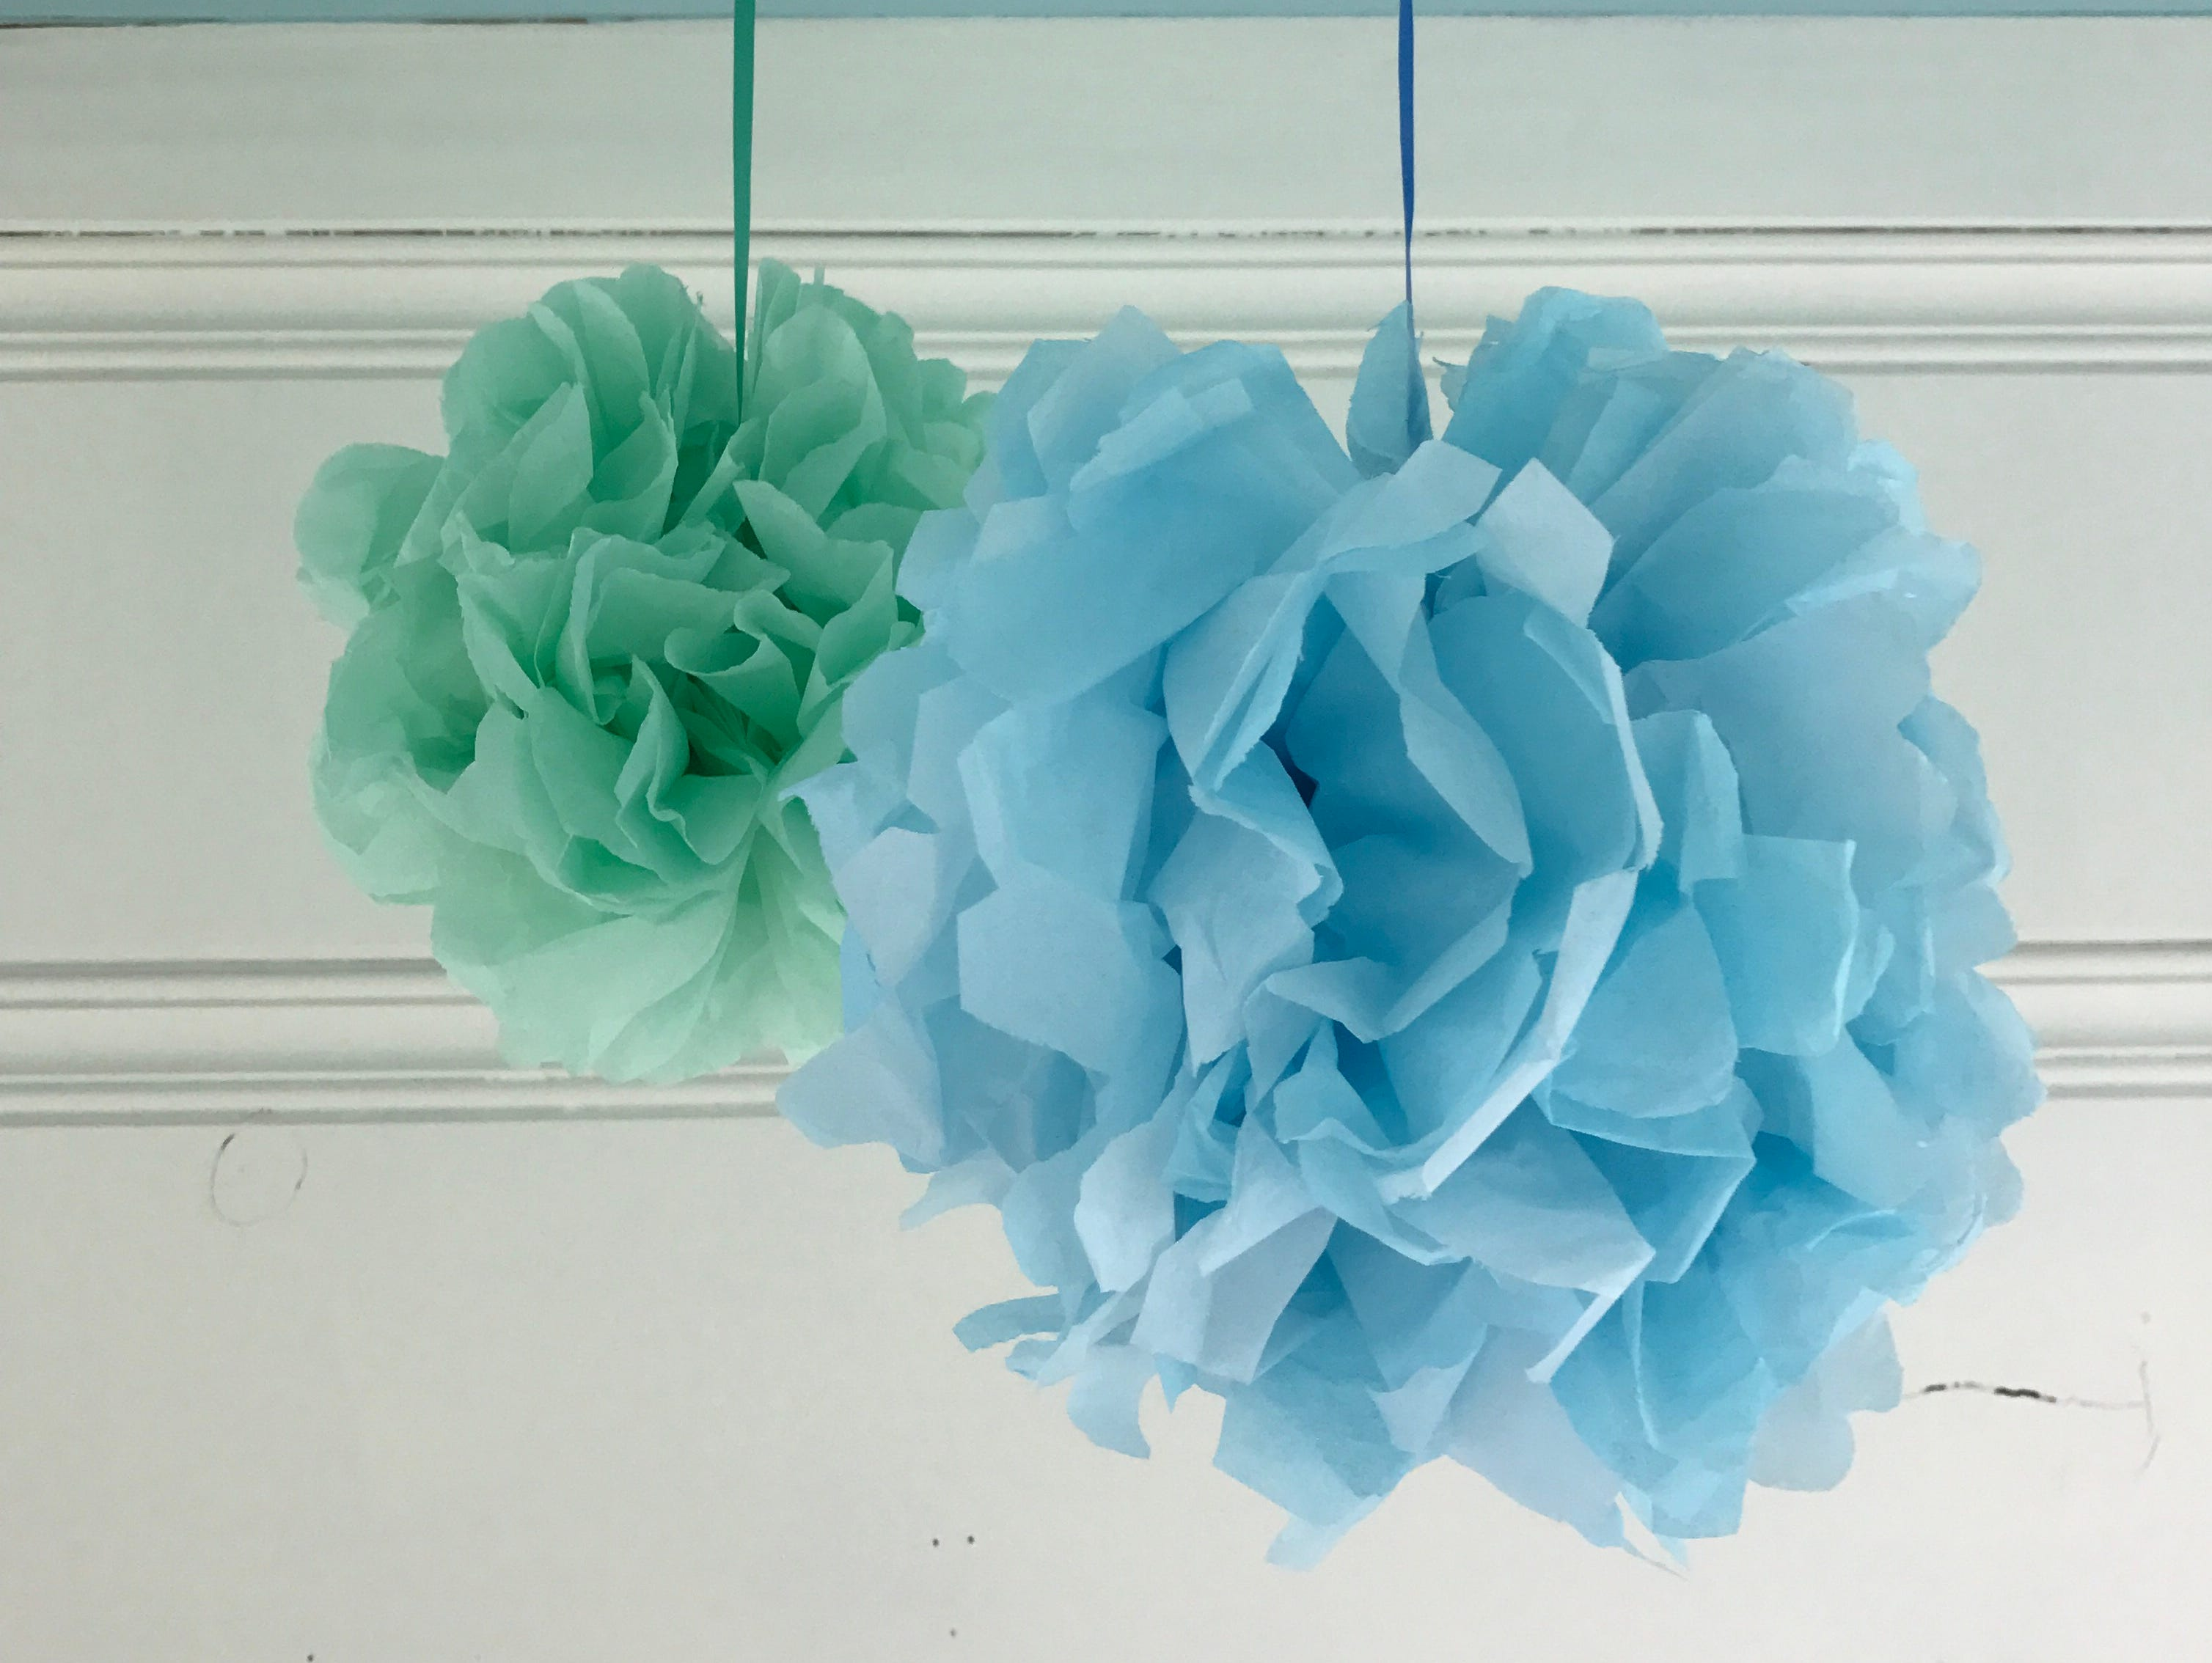 These tissue paper pom-poms are a fun and festive element that you can whip up in minutes.